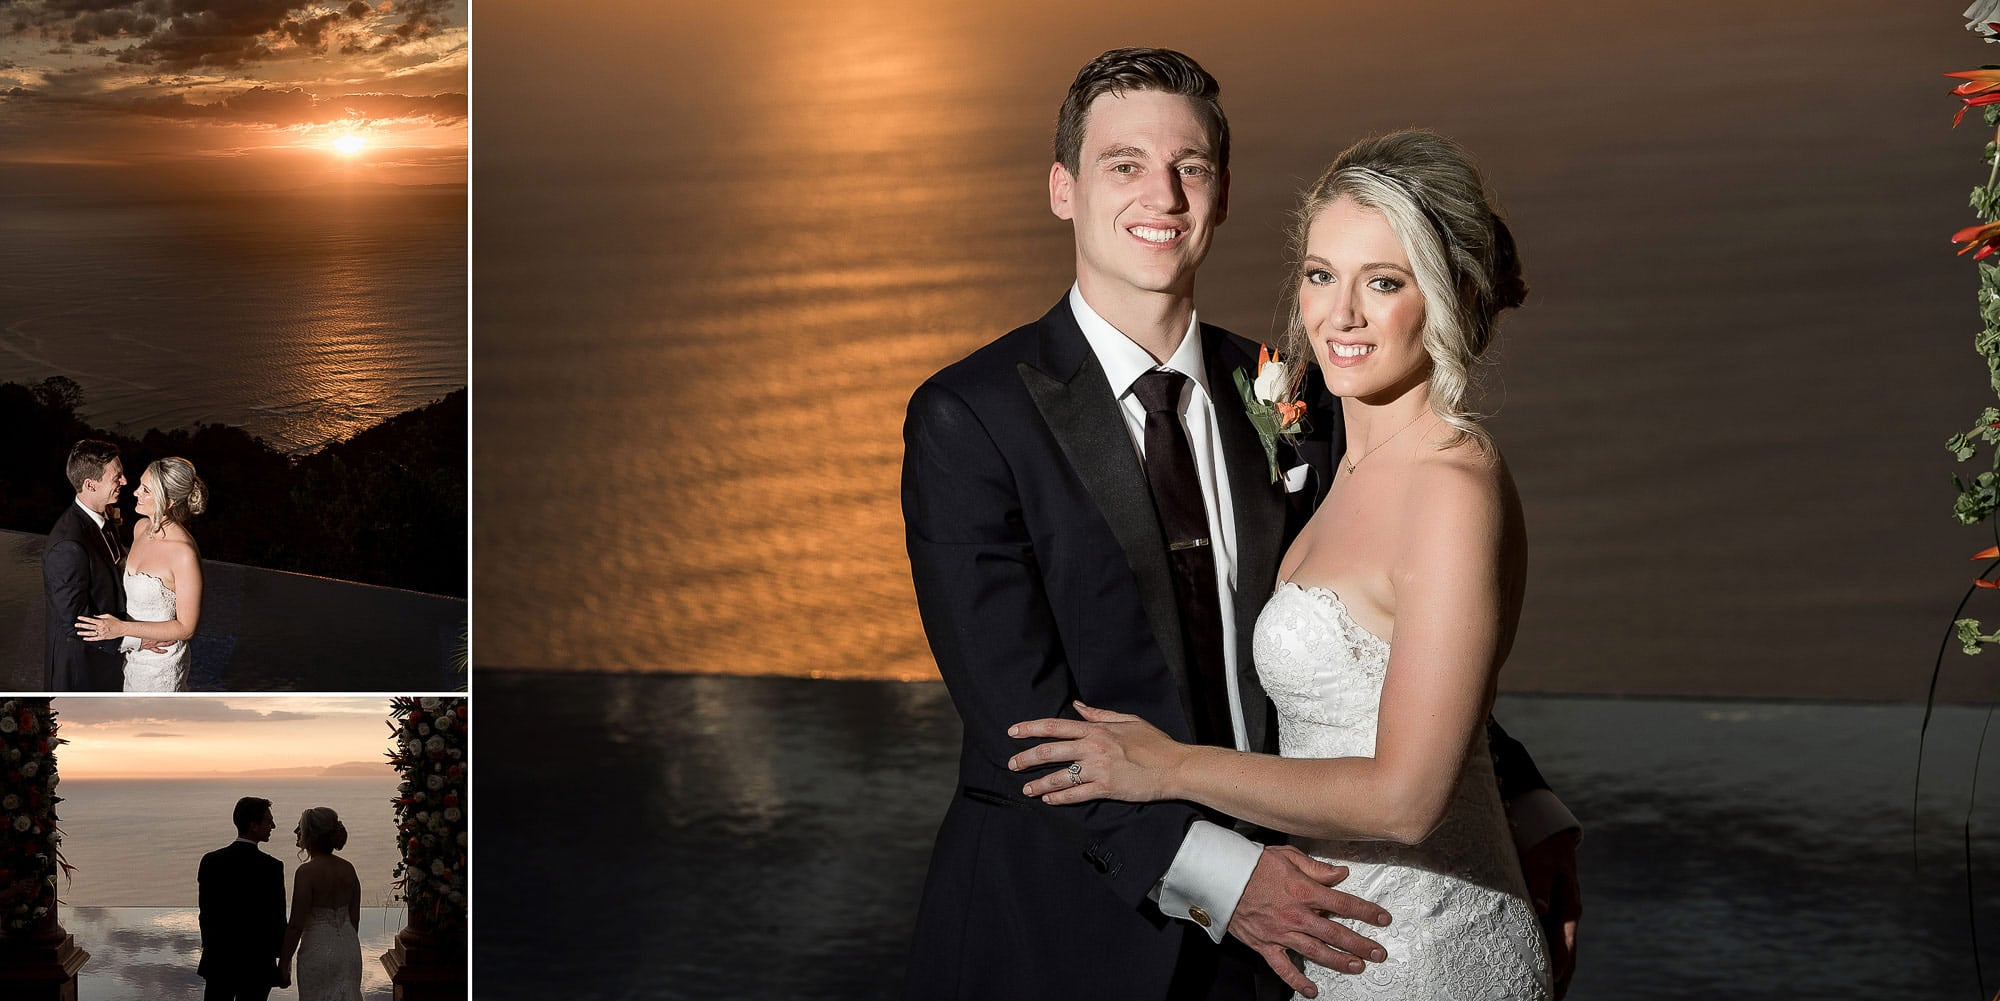 Portraits of the bride and groom with the spectacular sunset!